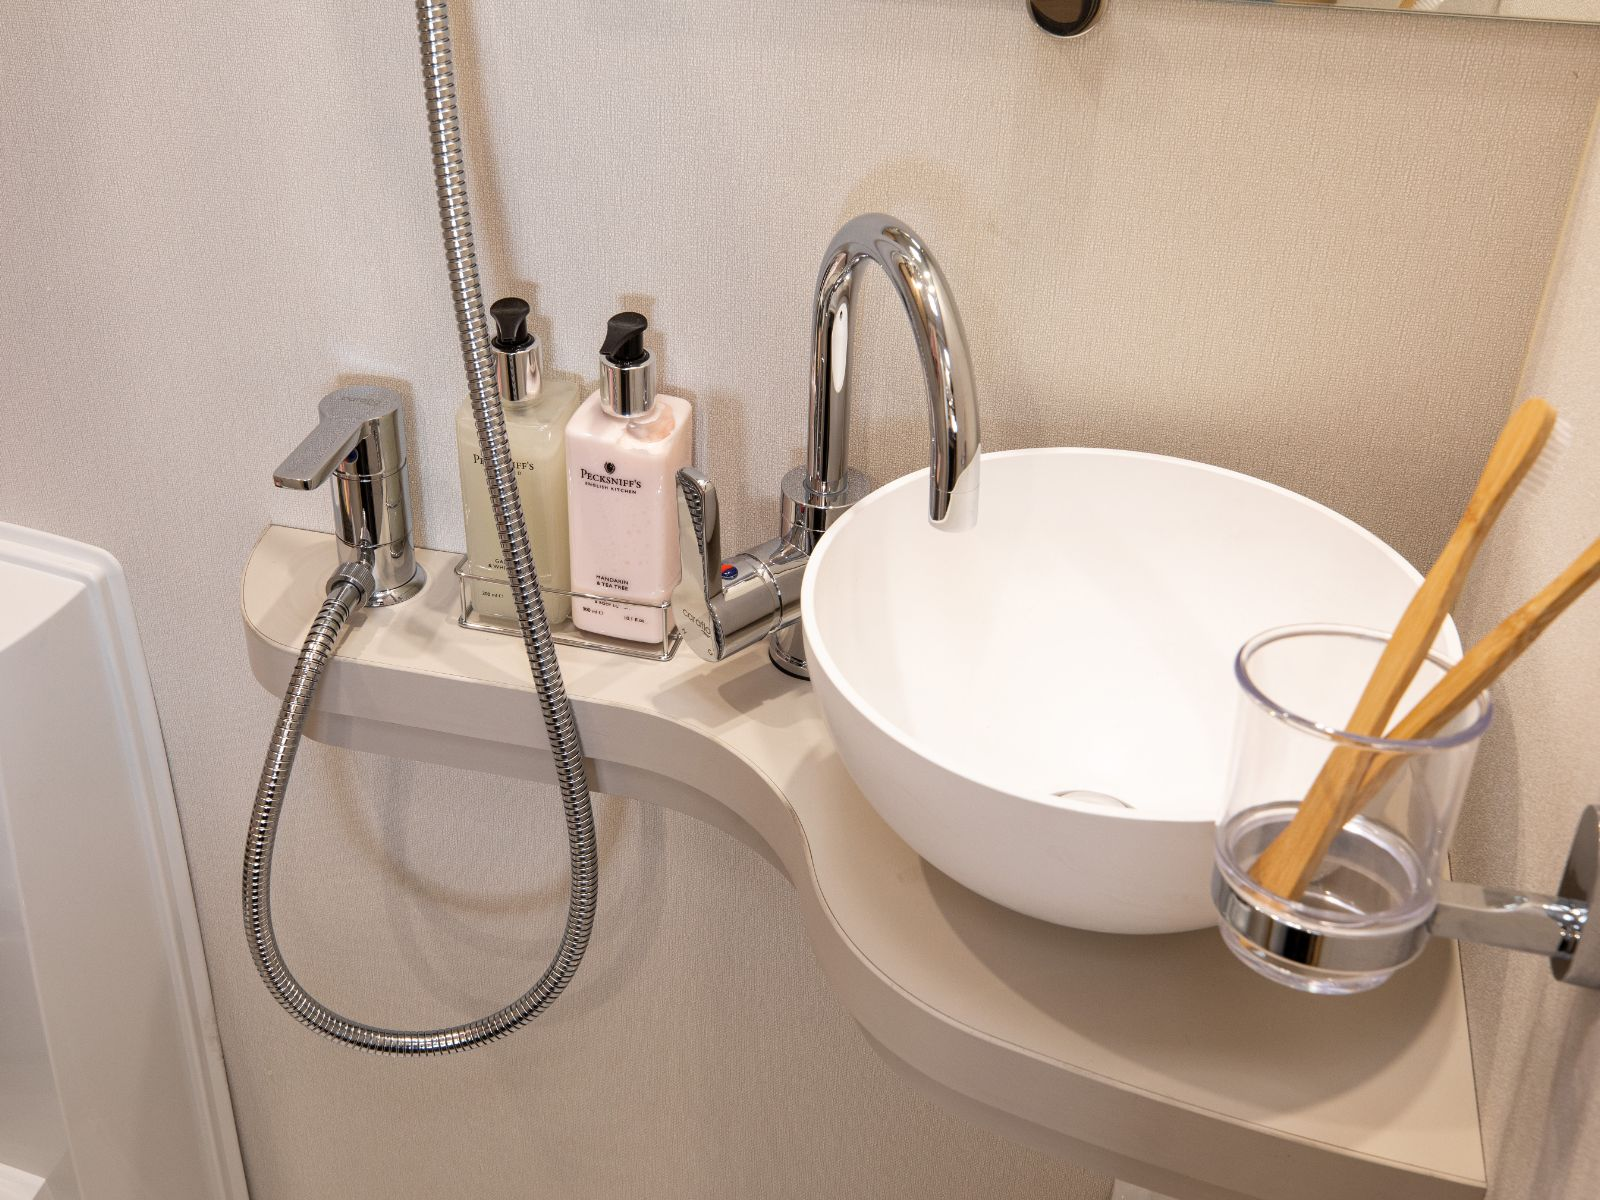 Bathroom sink with shower controls'